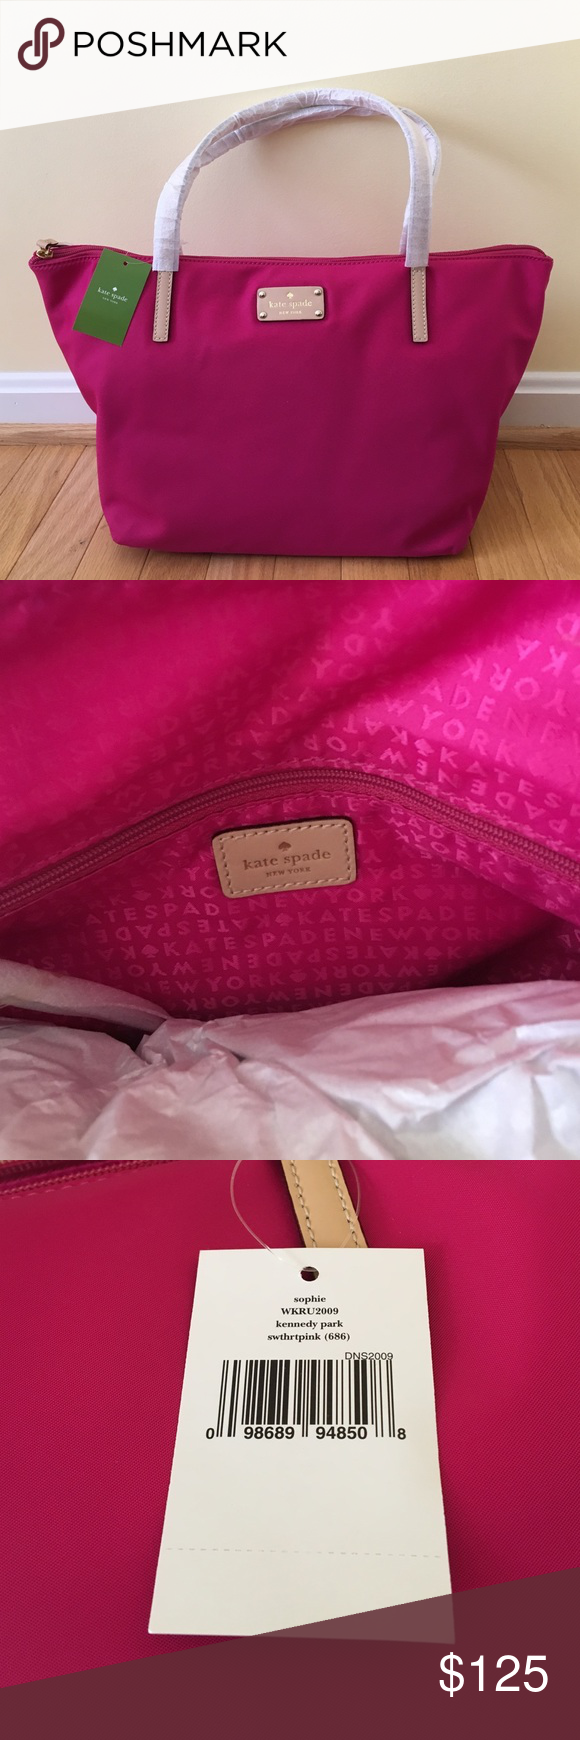 NWT Kate Spade Kennedy Park Sophie nylon Tote Bag Sweetheart pink nylon tote bag.  New with tags.  Tan straps still have protective wrapping.  Zippered inside pocket and cell phone pocket inside too. kate spade Bags Totes